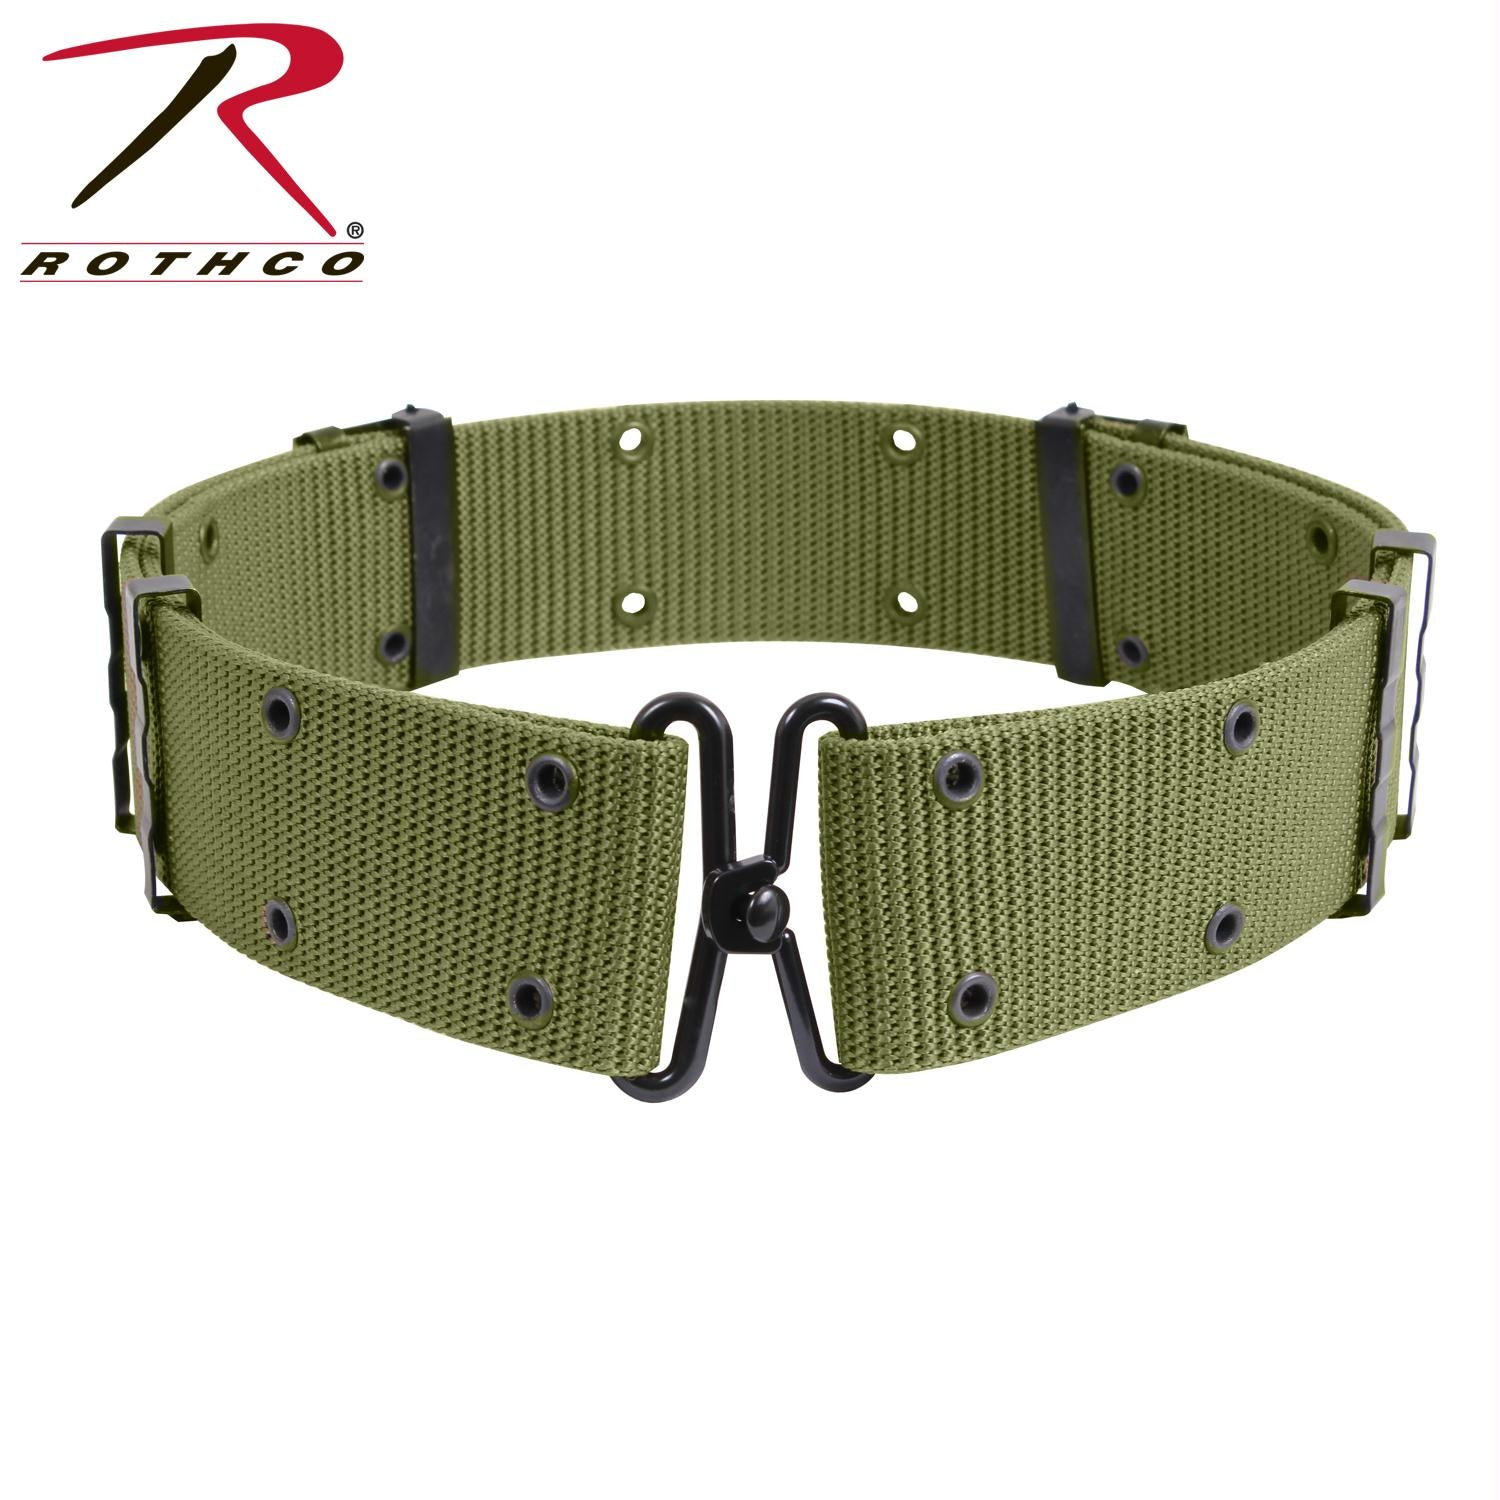 Rothco GI Style Pistol Belt With Metal Buckles